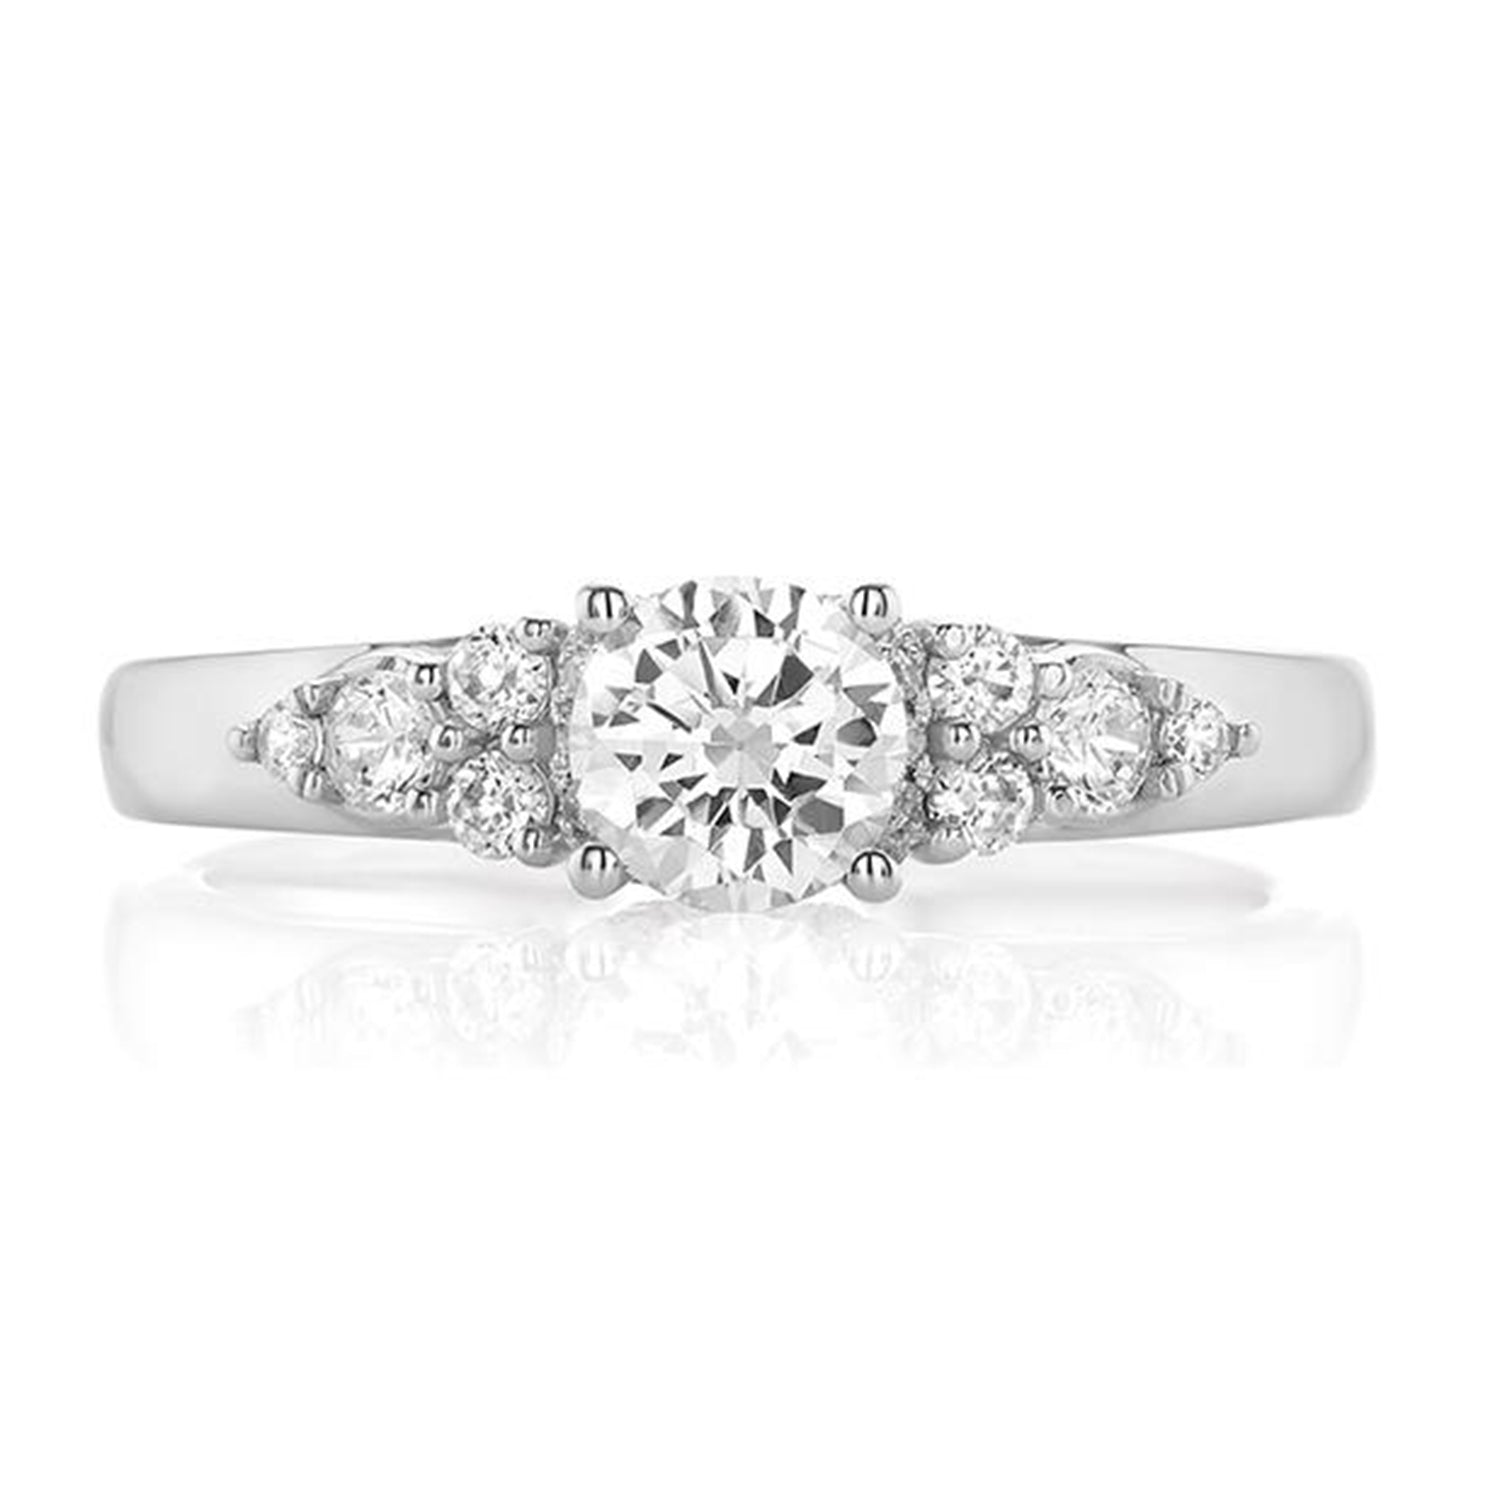 Promise 18ct White Gold Round Brilliant Cut with 1 CARAT tw of Diamonds